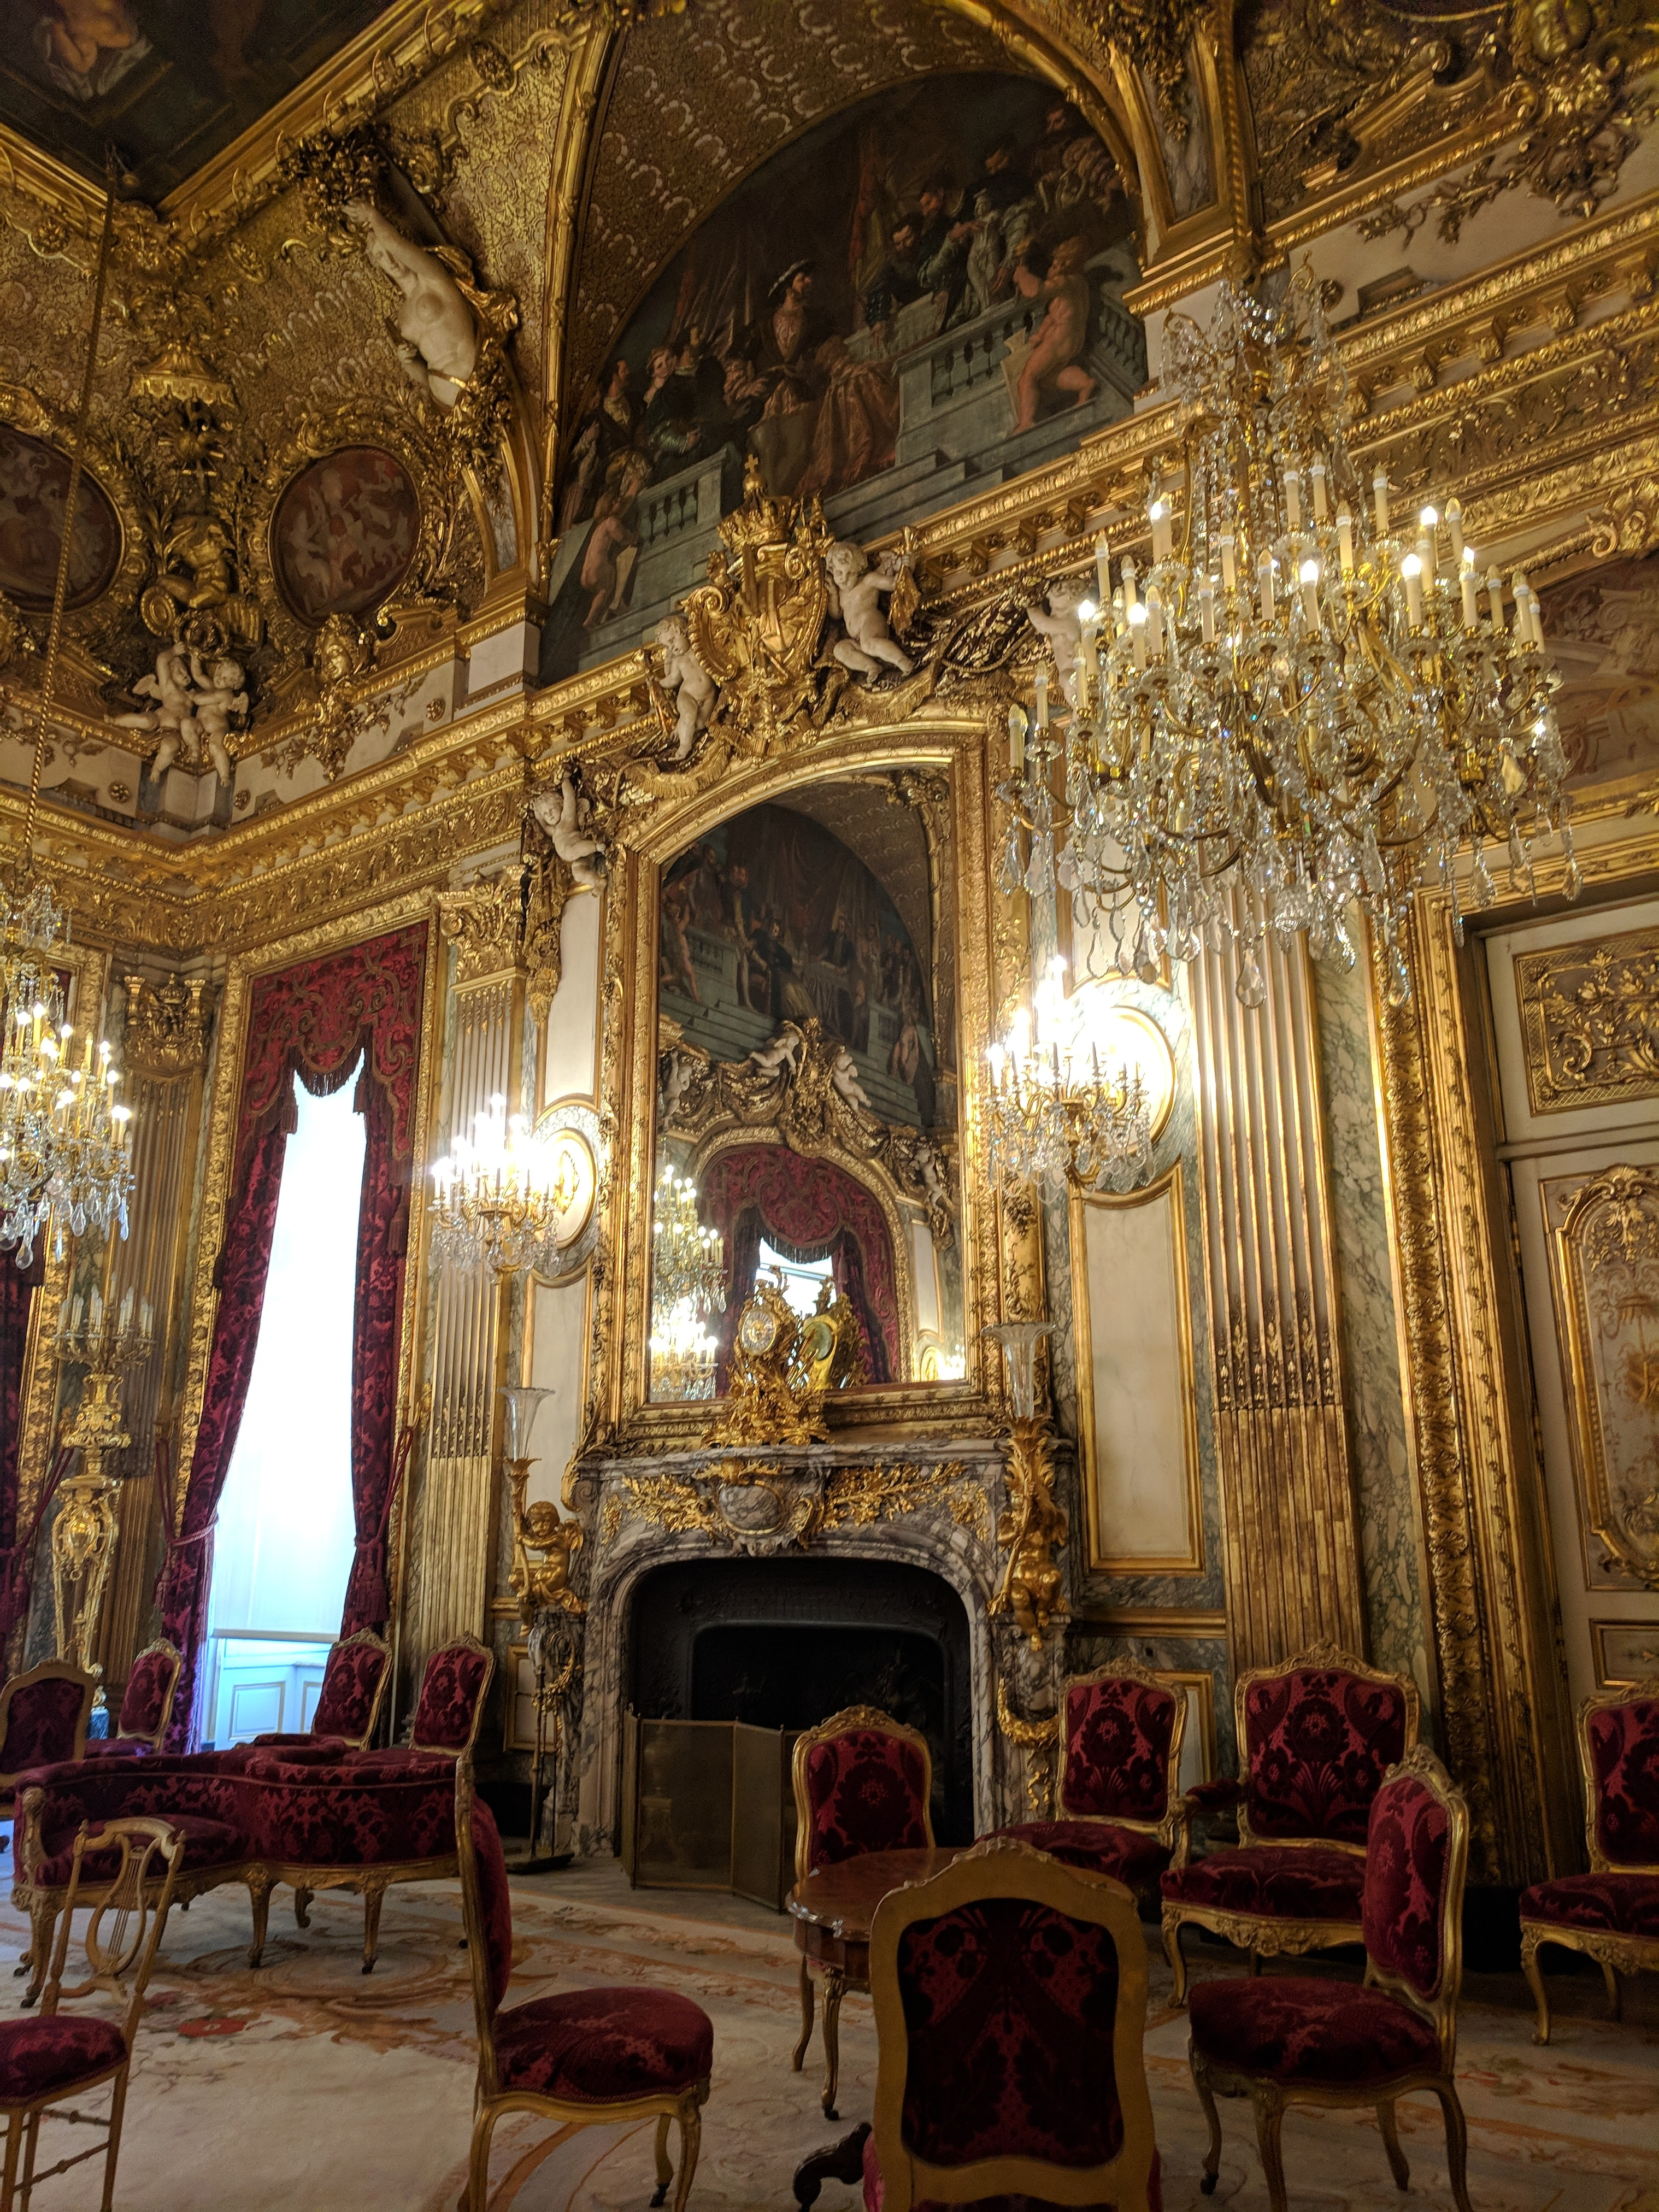 The Wettin Rulers of Saxony and Their Dresden Palace